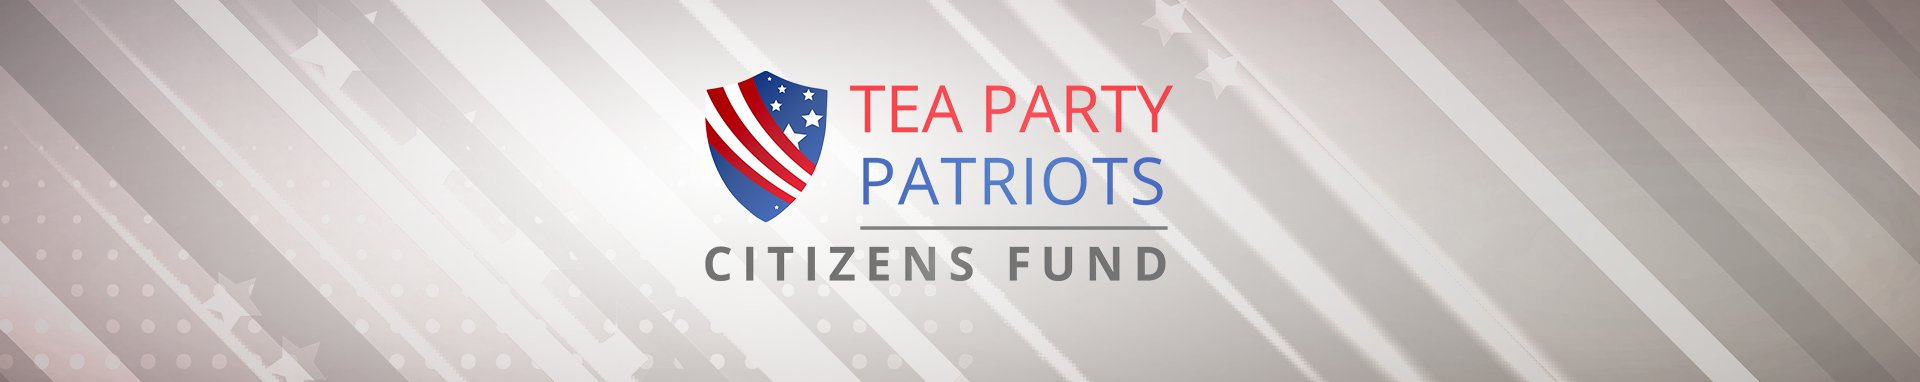 Tea Party Patriots Citizens Fund Congratulates Matt Rosendale on his Primary Victory for U.S. Senate